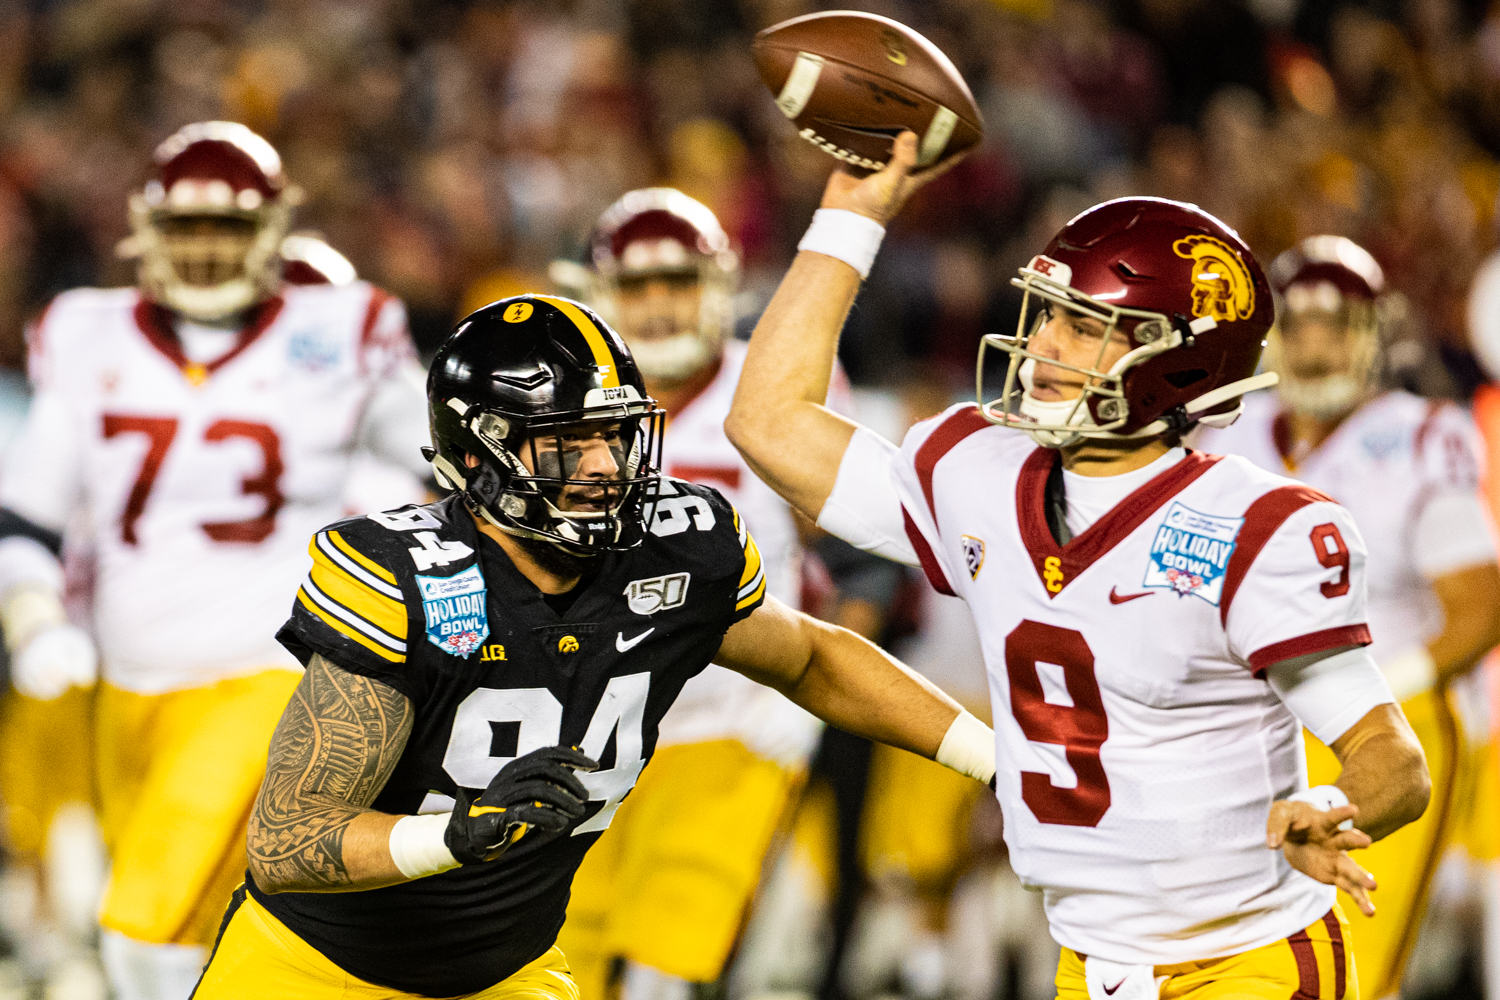 Iowa defensive end AJ Epenesa pursues USC's Kedon Slovis during the 2019 SDCCU Holiday Bowl between Iowa and USC in San Diego on Friday, Dec. 27, 2019. The Hawkeyes defeated the Trojans, 49-24.